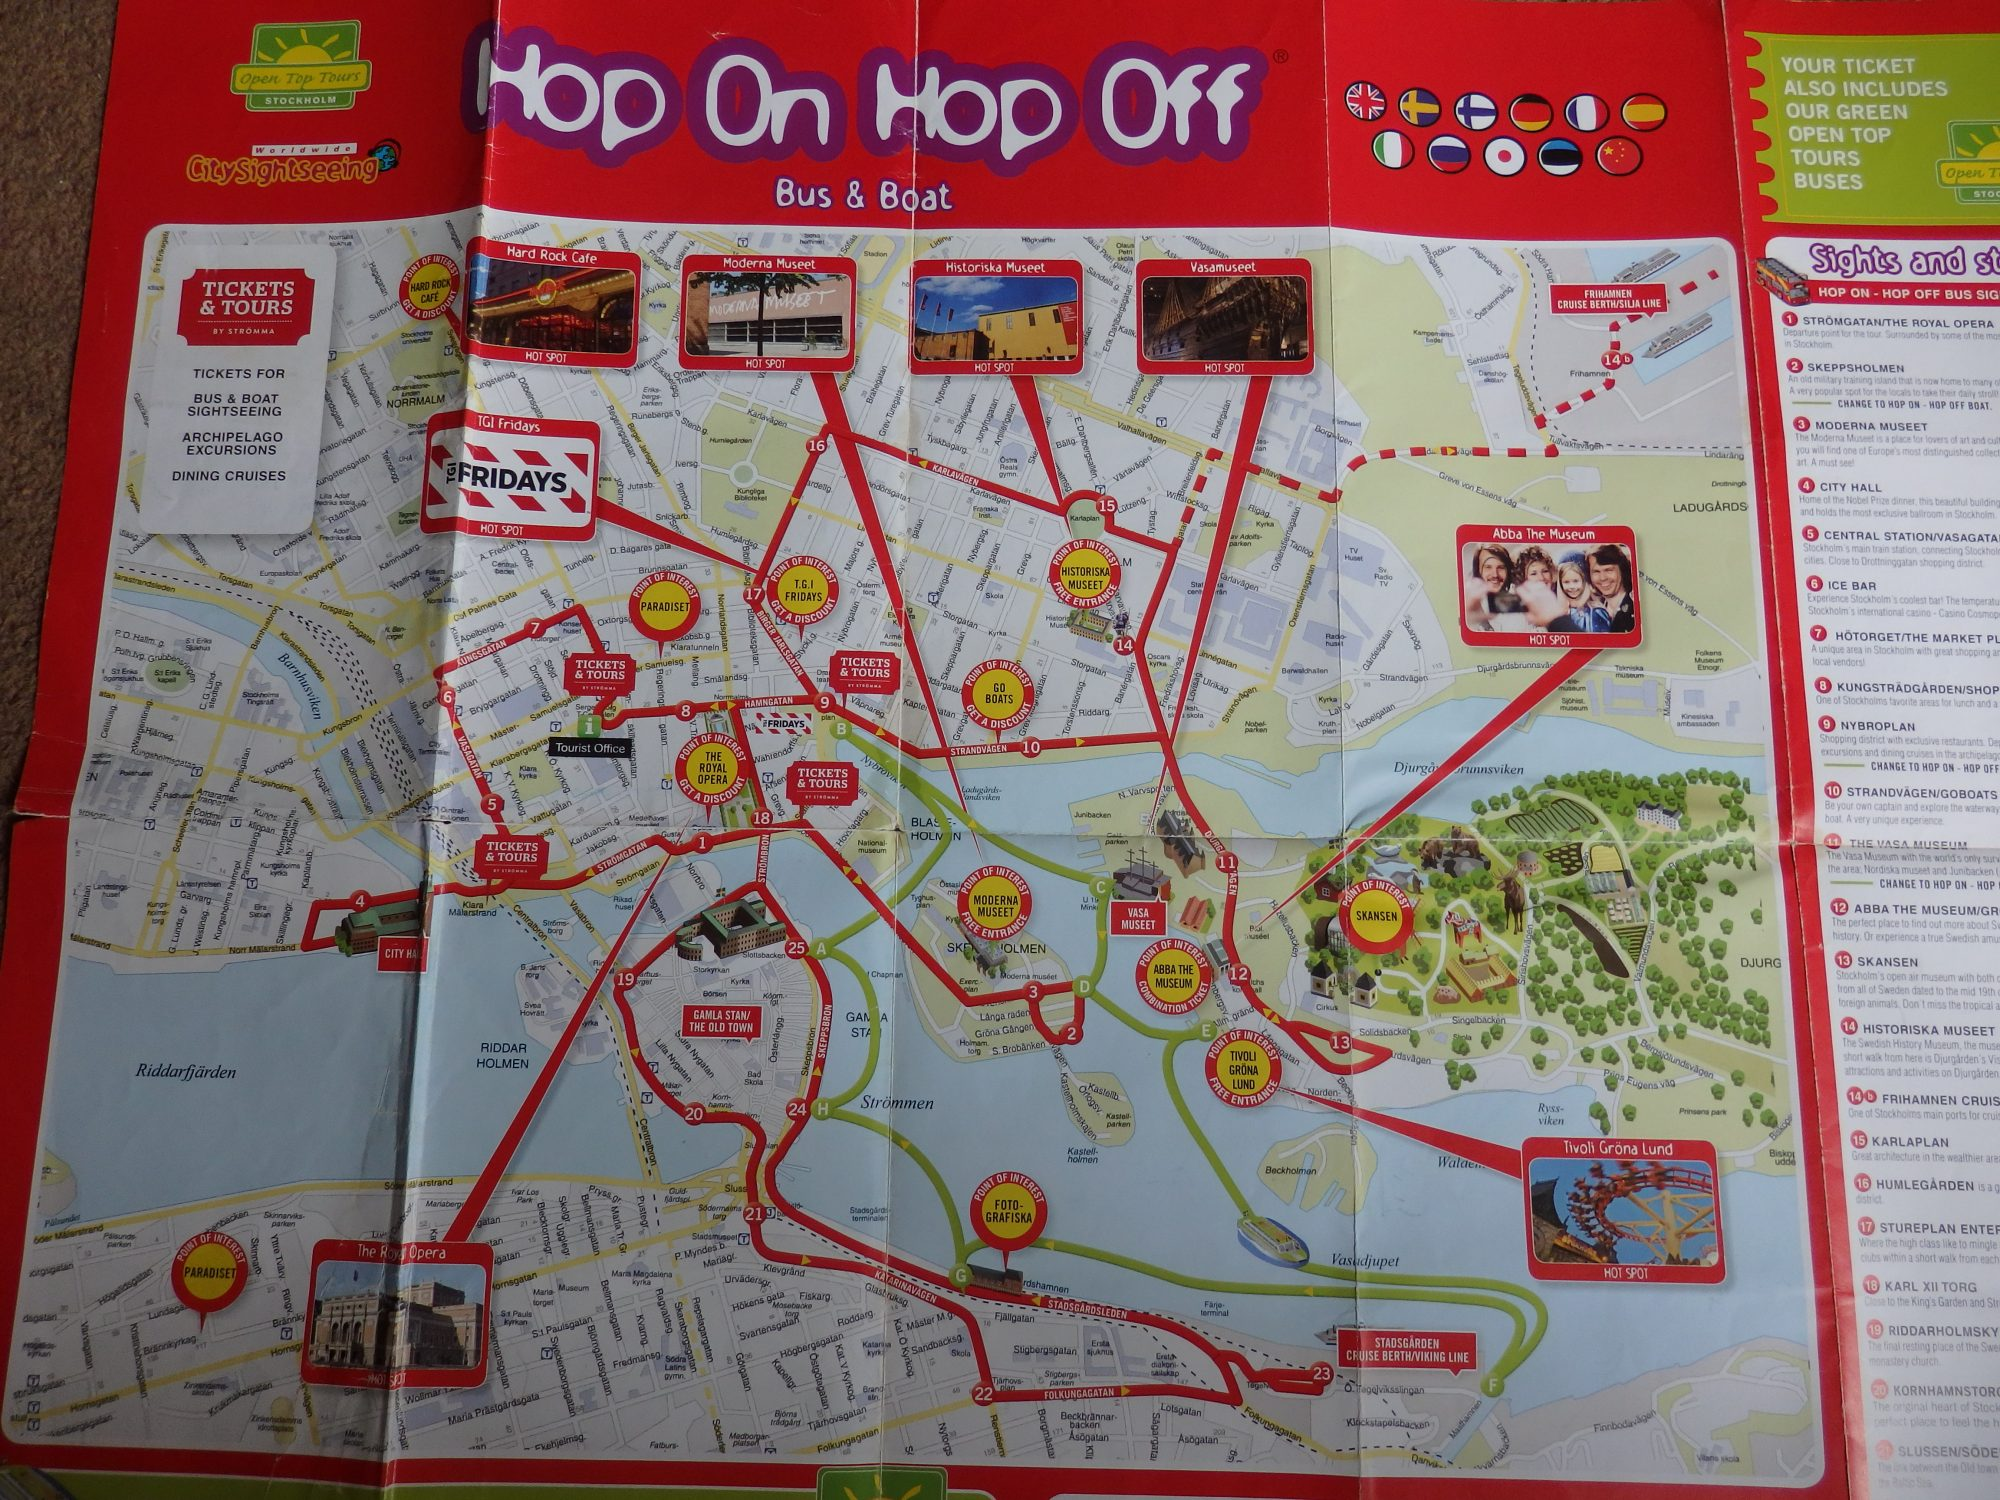 the printed map for the Hop On Hop Off routes: red for the bus, green for the boat